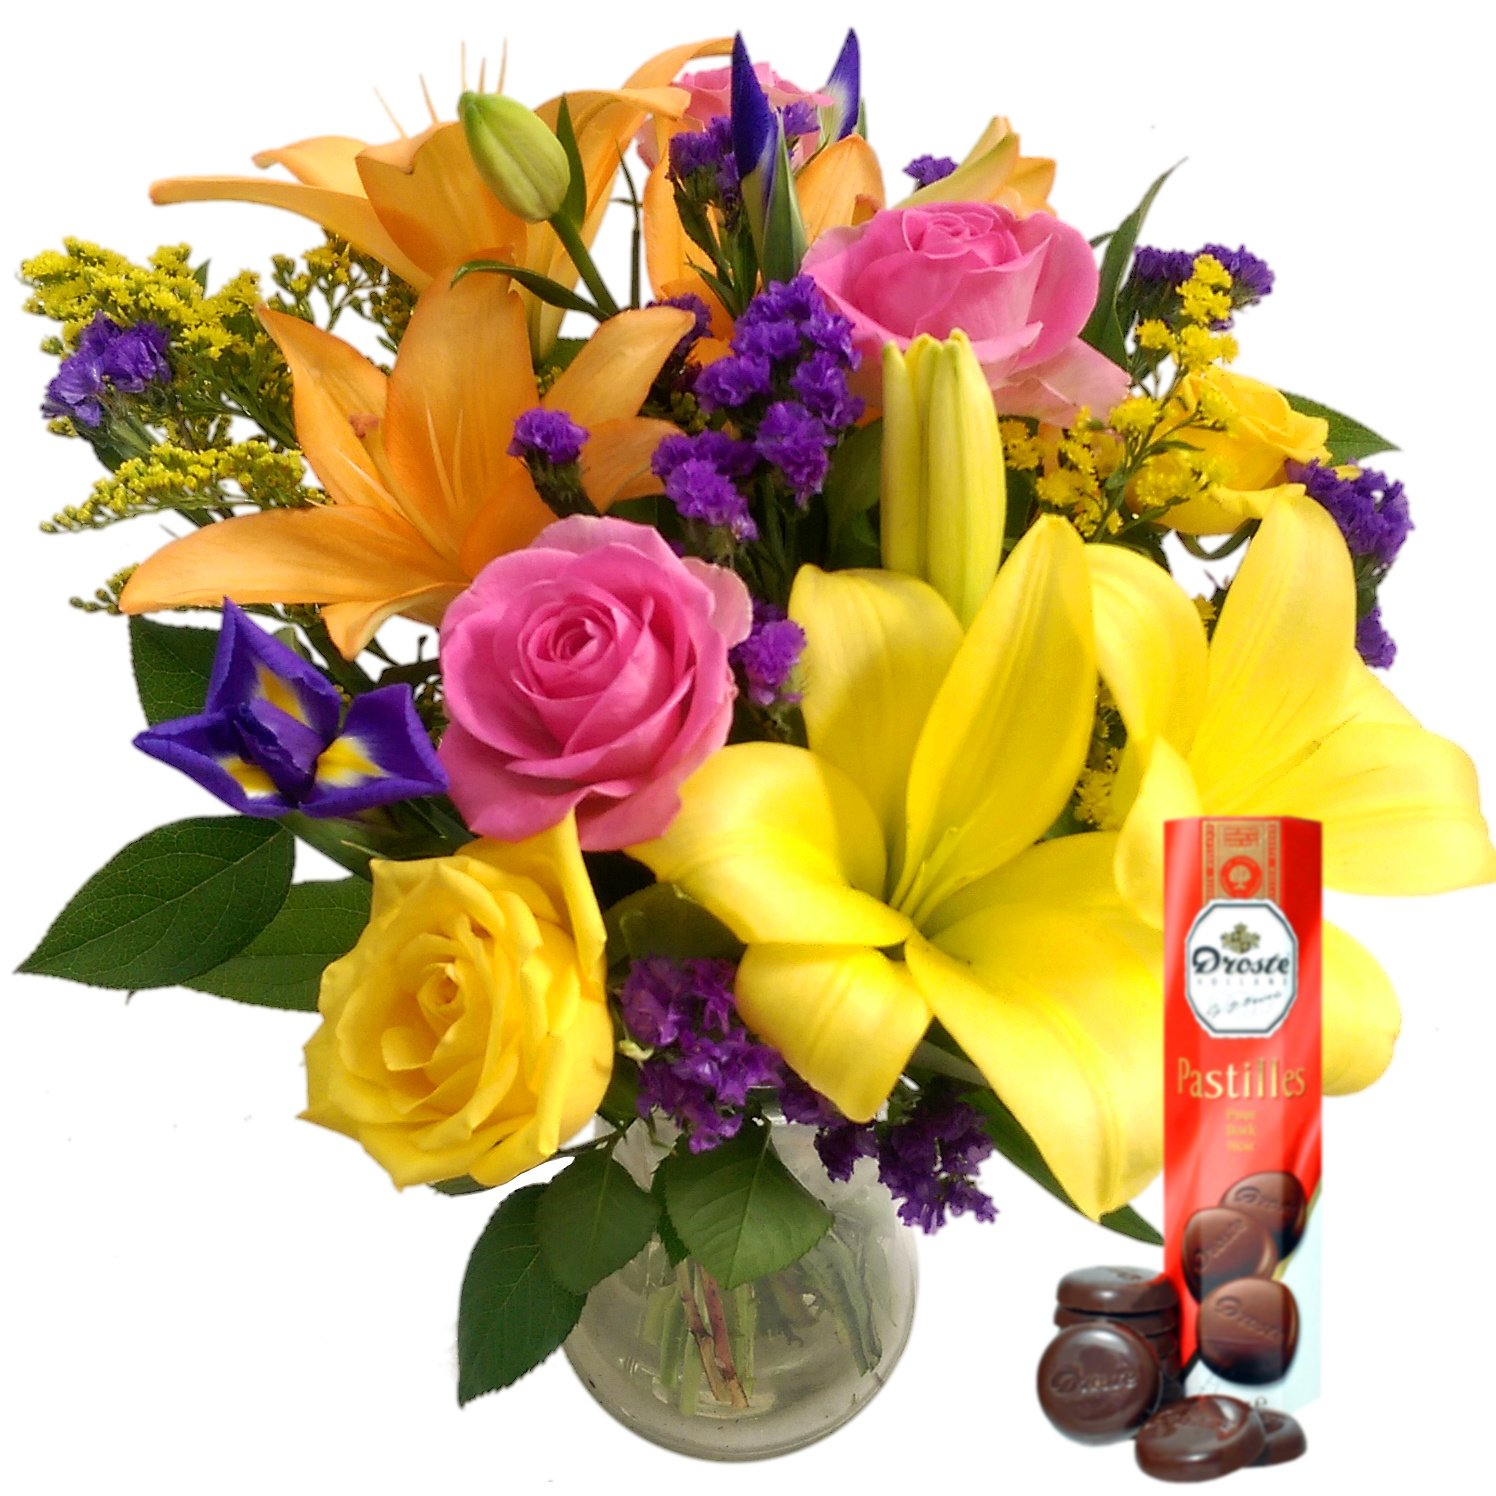 Clare Florist Summer Siesta Bouquet with Free Chocolates - Vibrant Fresh Flowers Hand Arranged for Birthdays, Celebrations and Other Occasions Y-1321-A